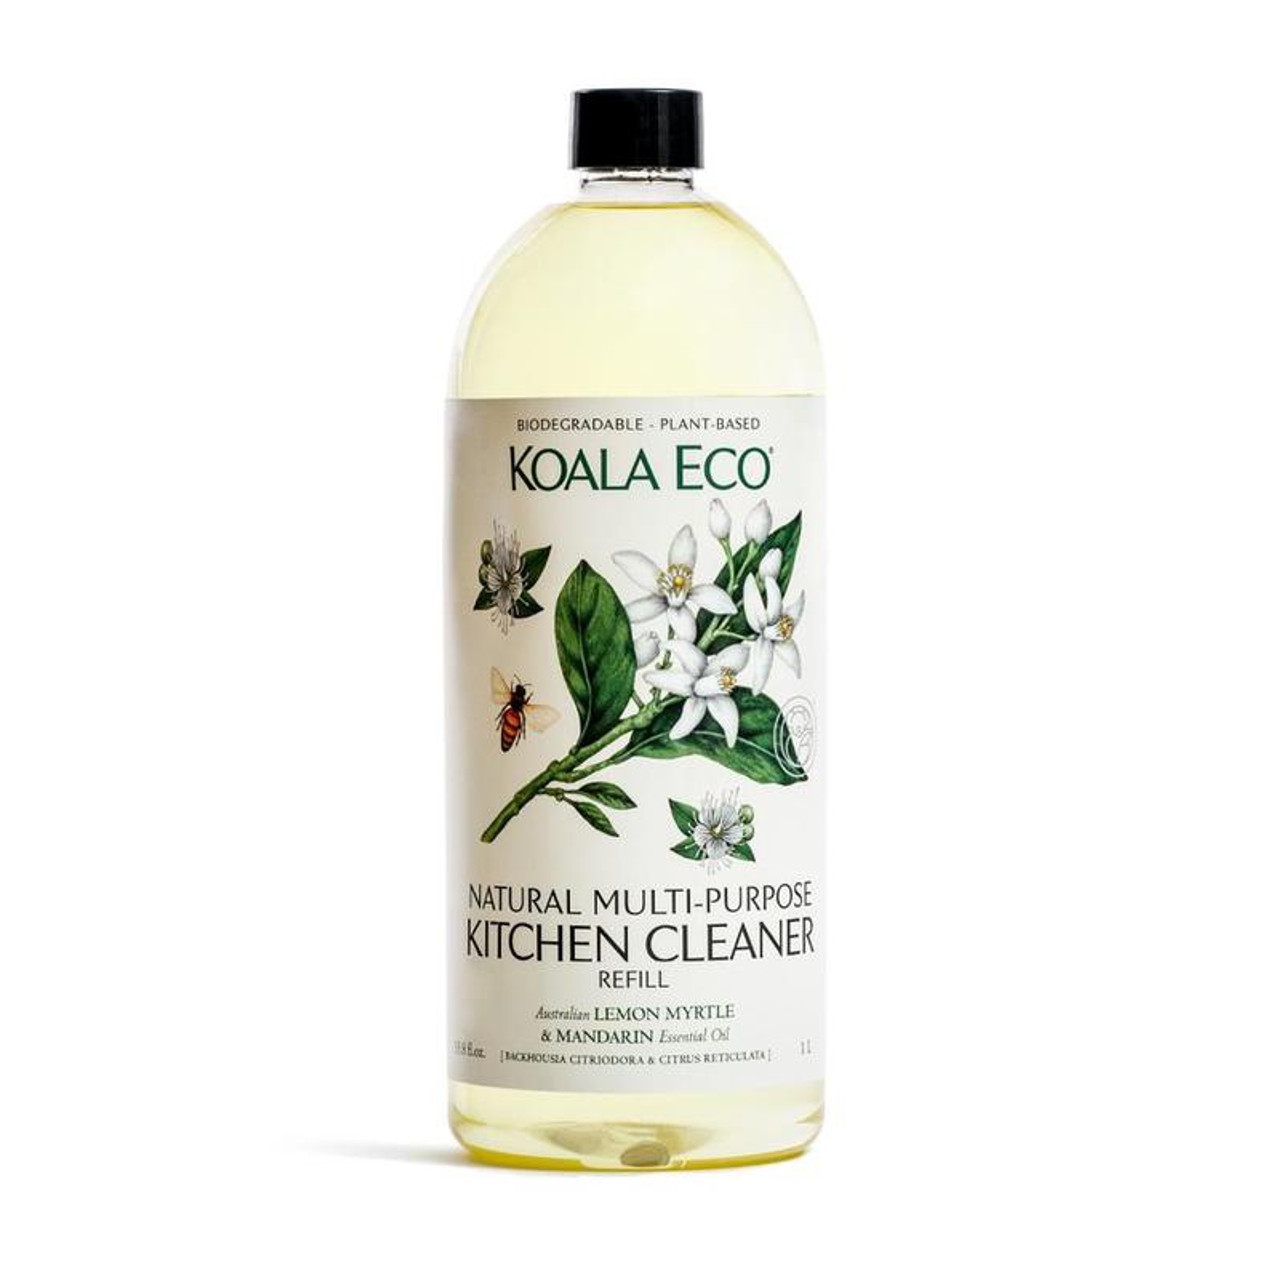 Koala Eco Natural Multi-Purpose Kitchen Cleaner Refill 1L at Baby Barn Discounts Koala Eco Lemon Myrtle & Mandarin Multi-Purpose Kitchen Cleaner is safe for refrigerator, dishwasher, microwave oven & etc.